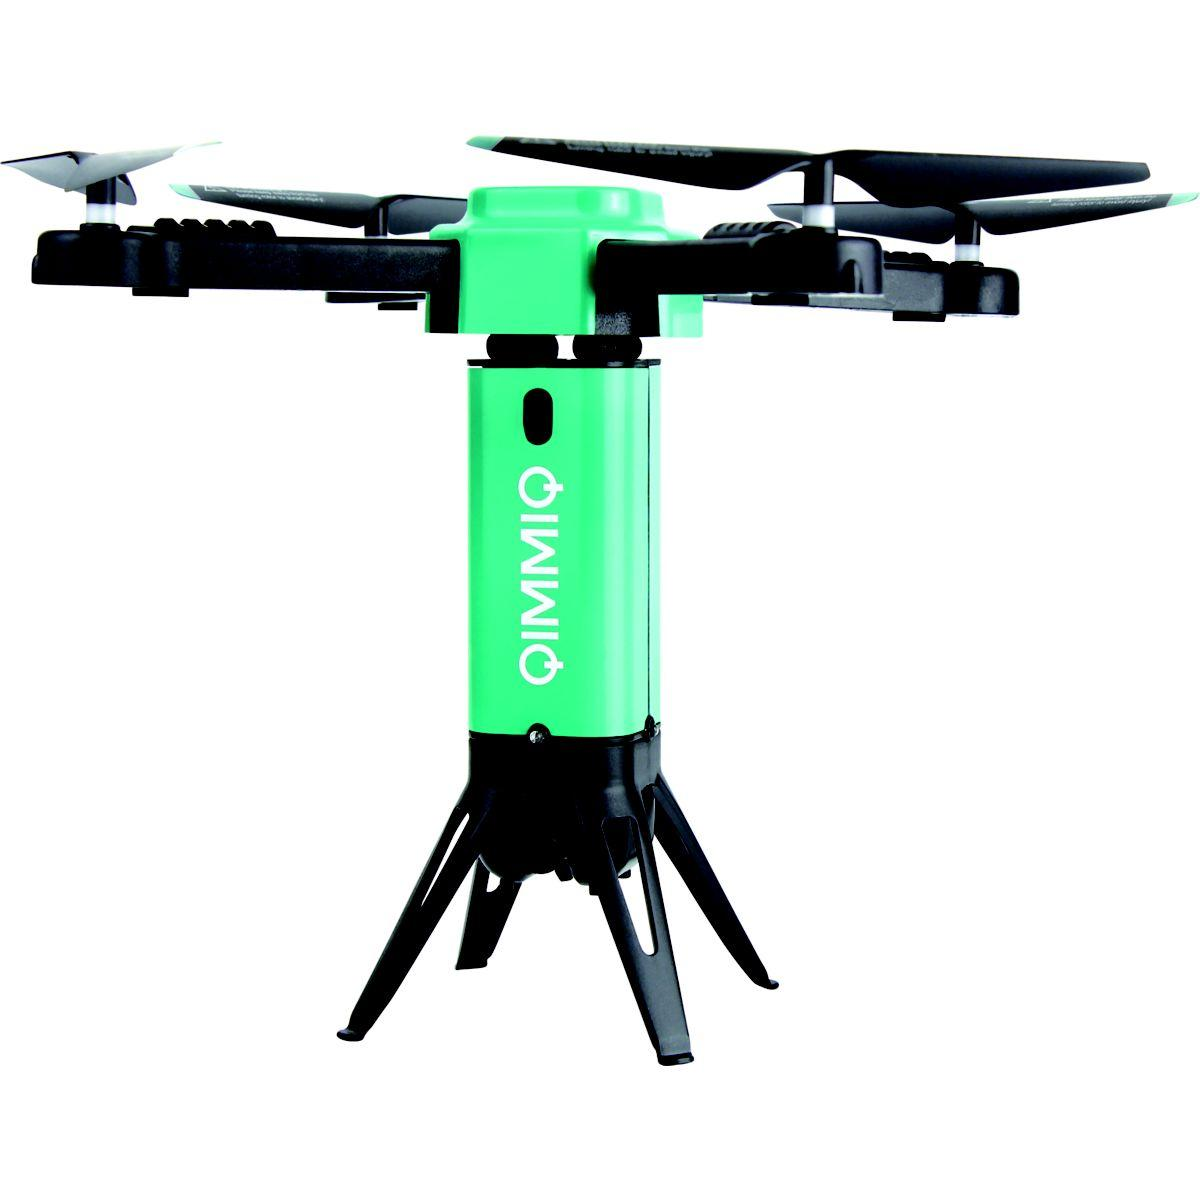 Drone qimmiq qid tower - 2% de remise imm�diate avec le code : fete2 (photo)